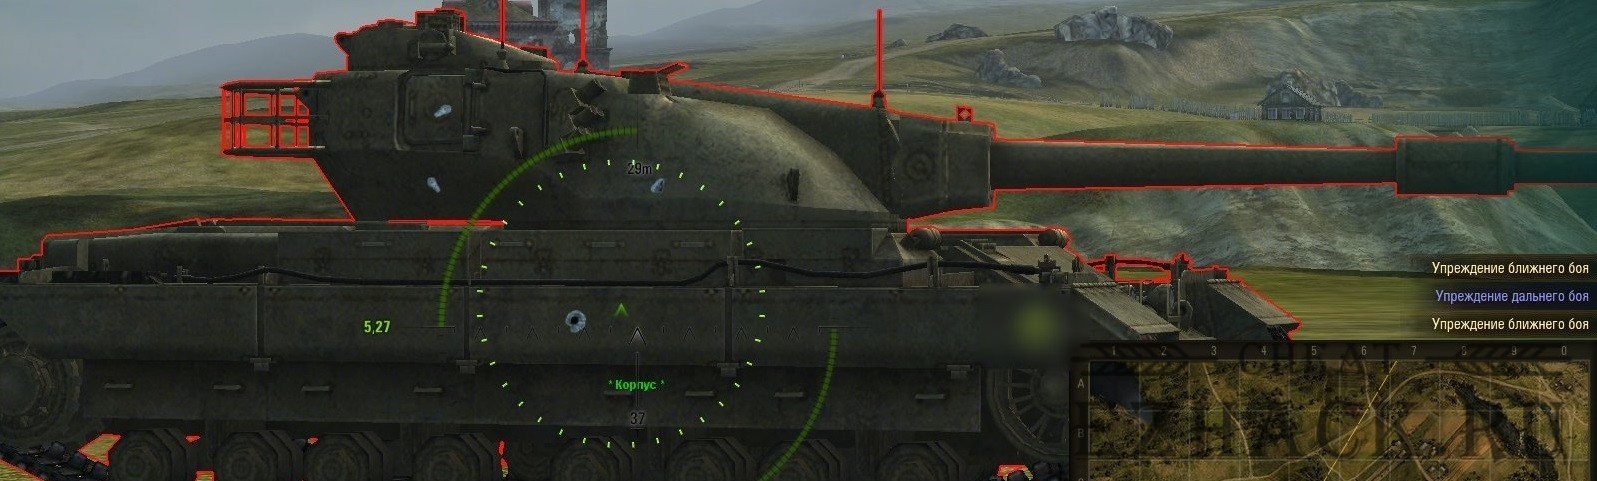 AIM для World of tanks 1.5.0.4 WOT